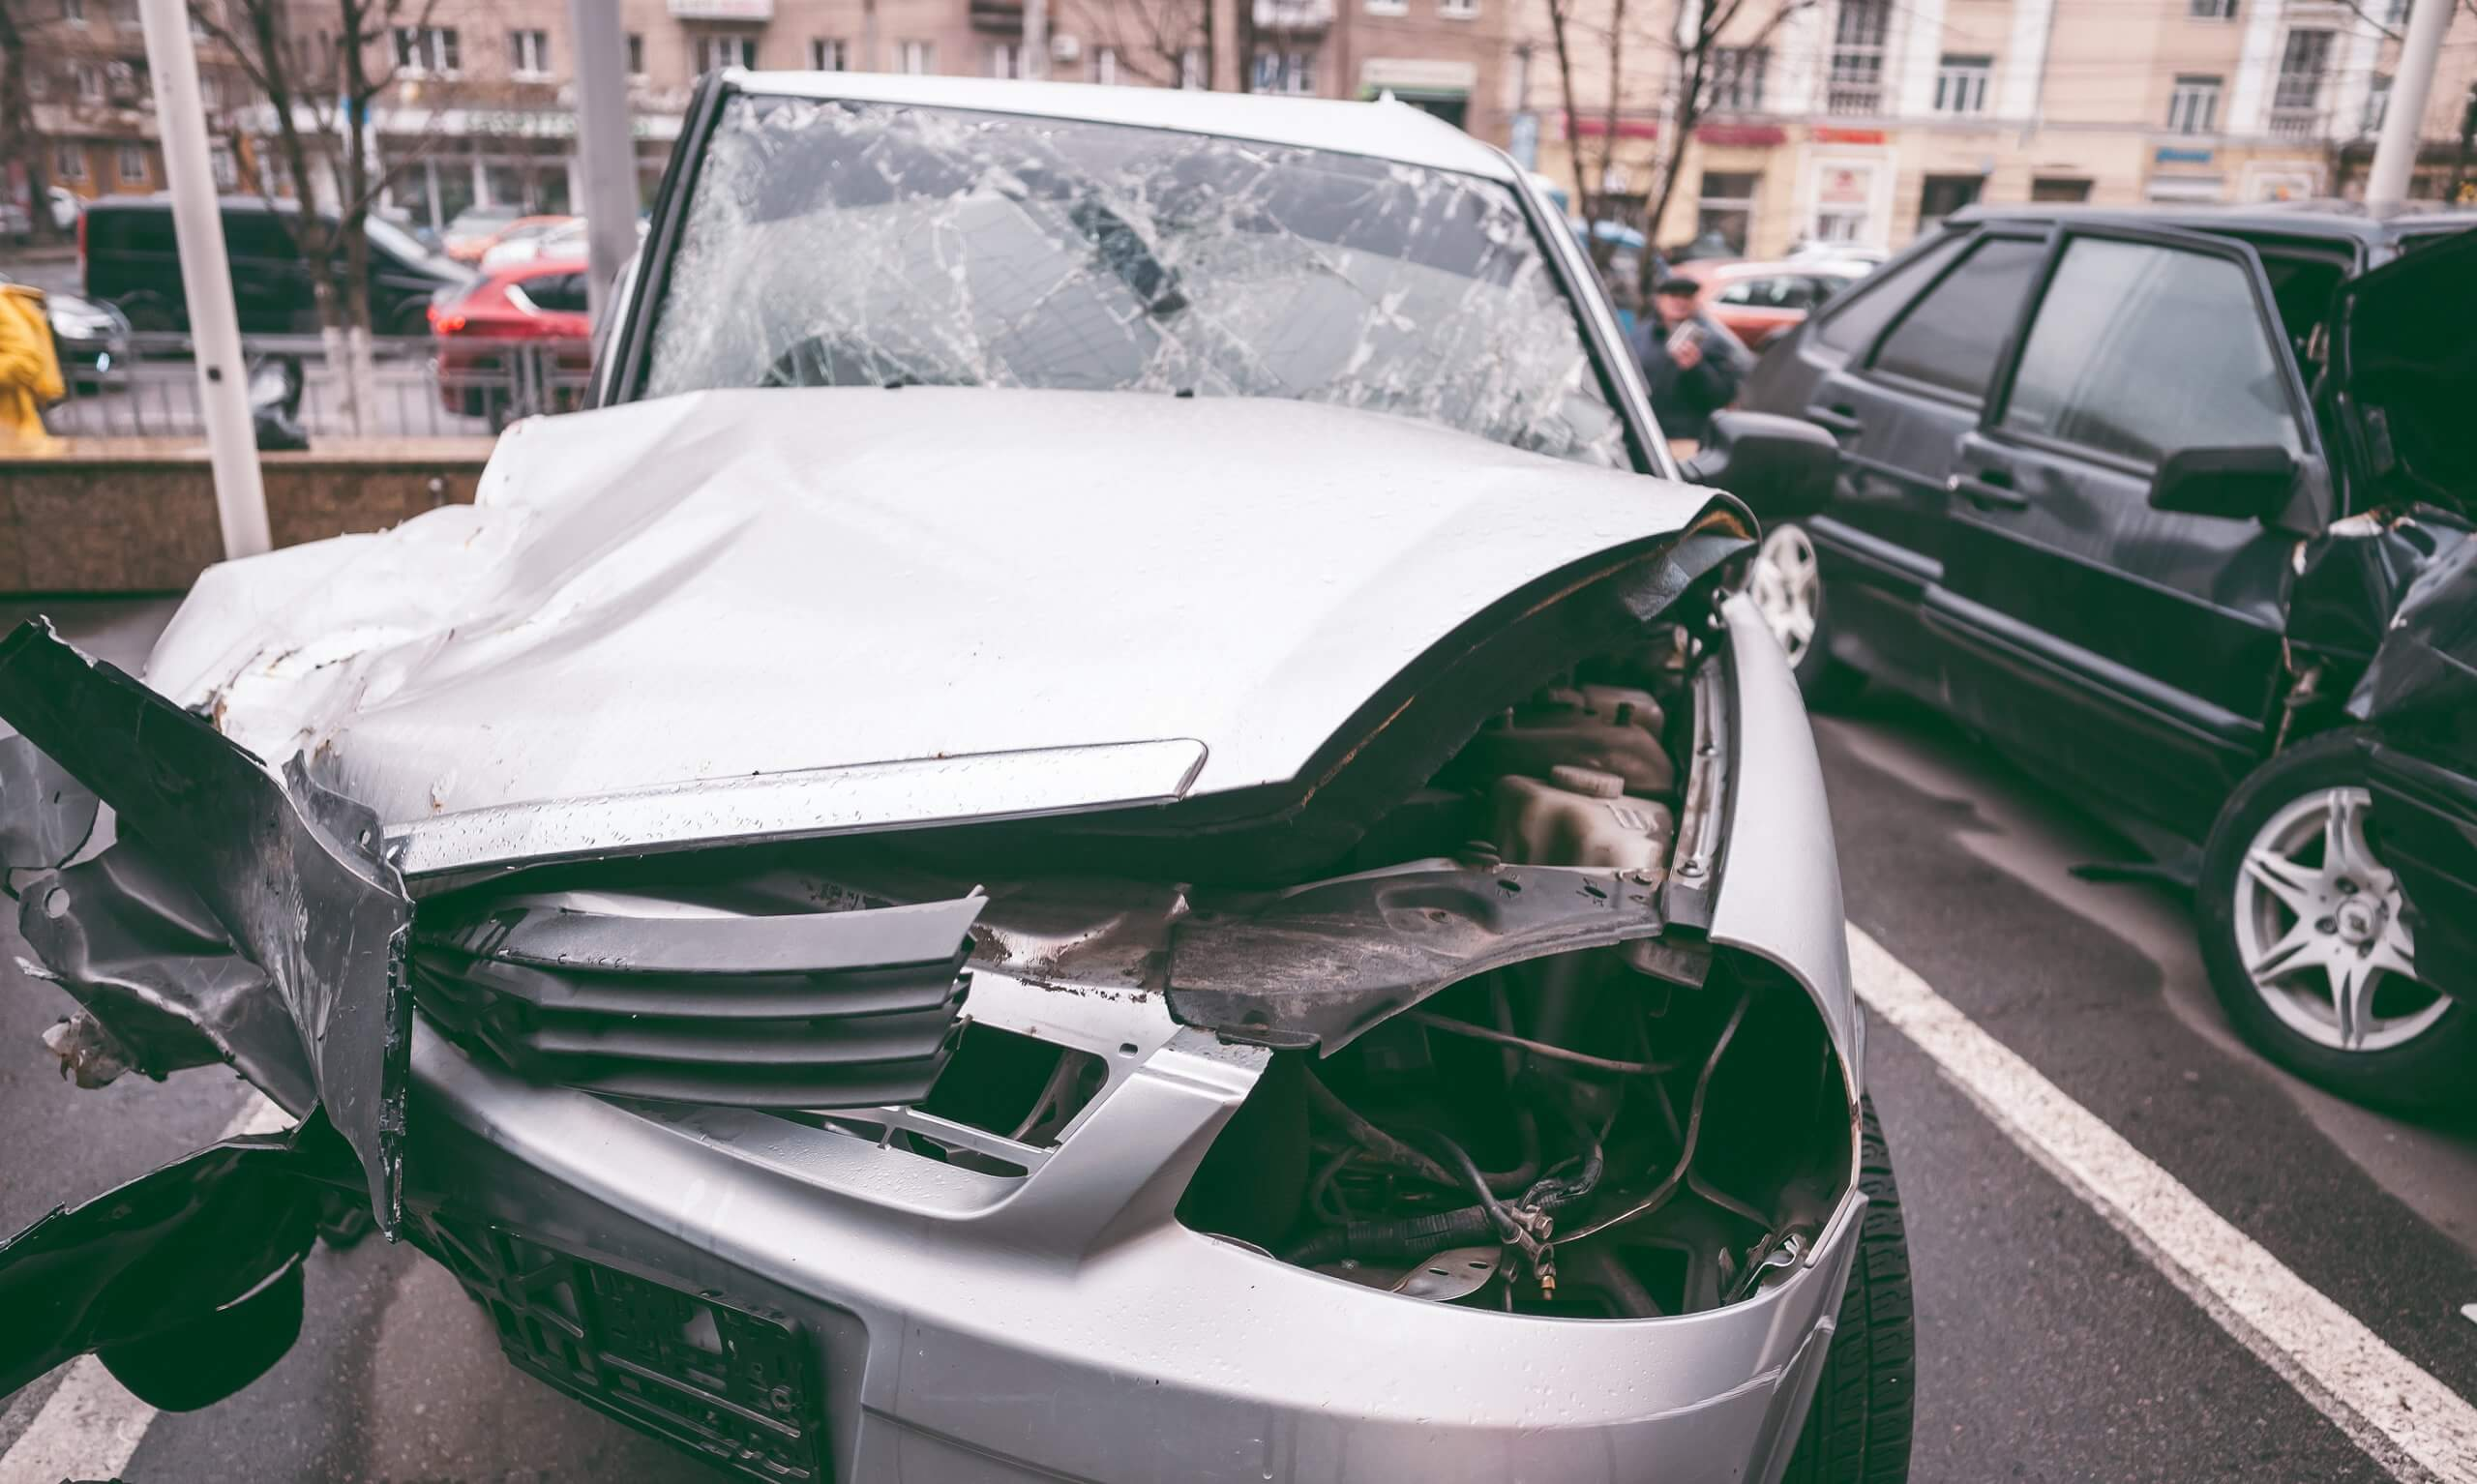 ruined silver car with crumpled bonnet and shattered windscreen as a result of car accident